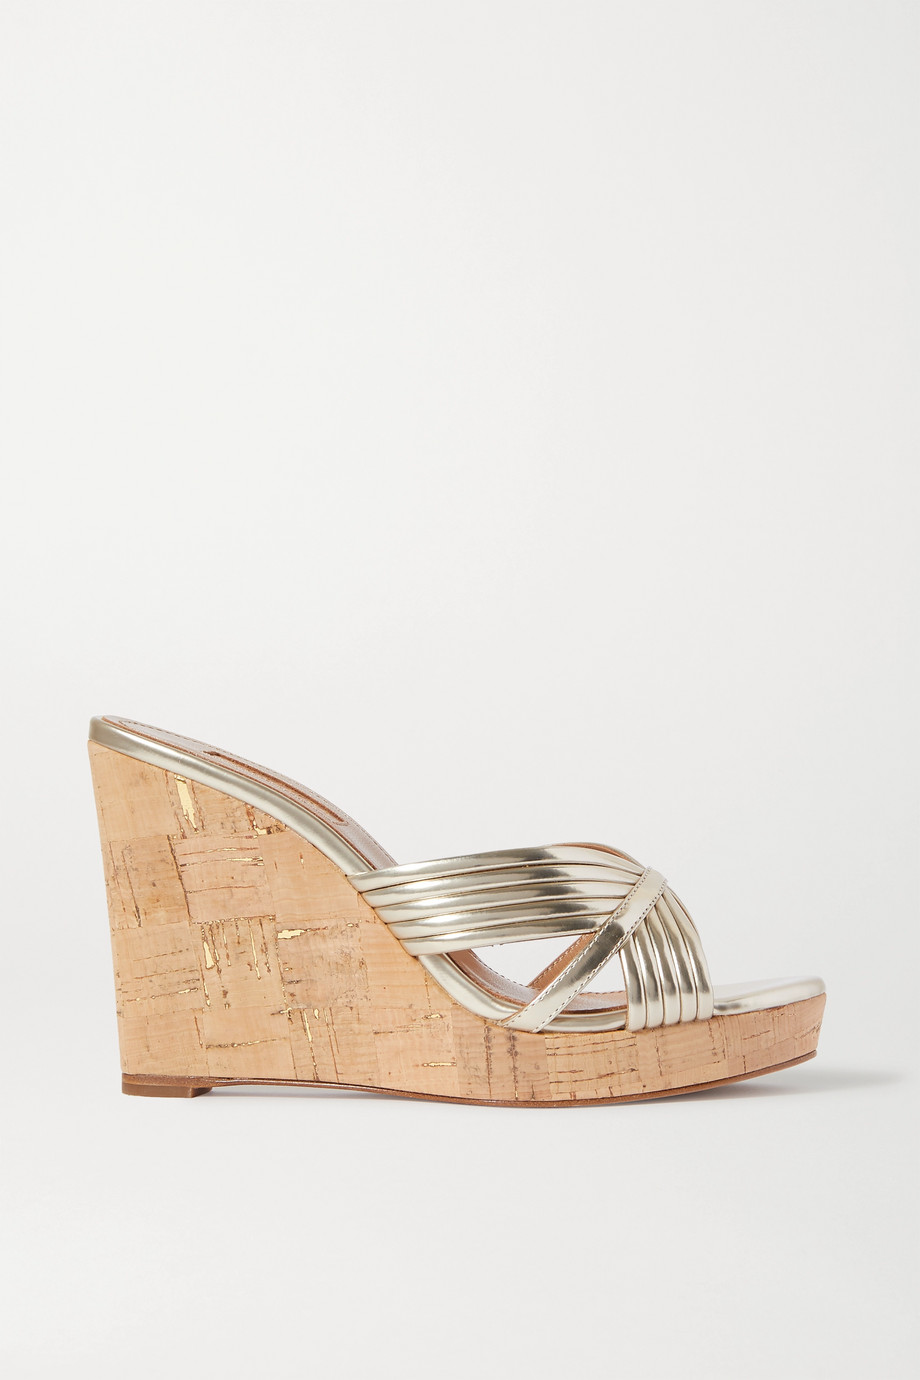 Aquazzura Sundance 120 metallic vegan leather wedge sandals